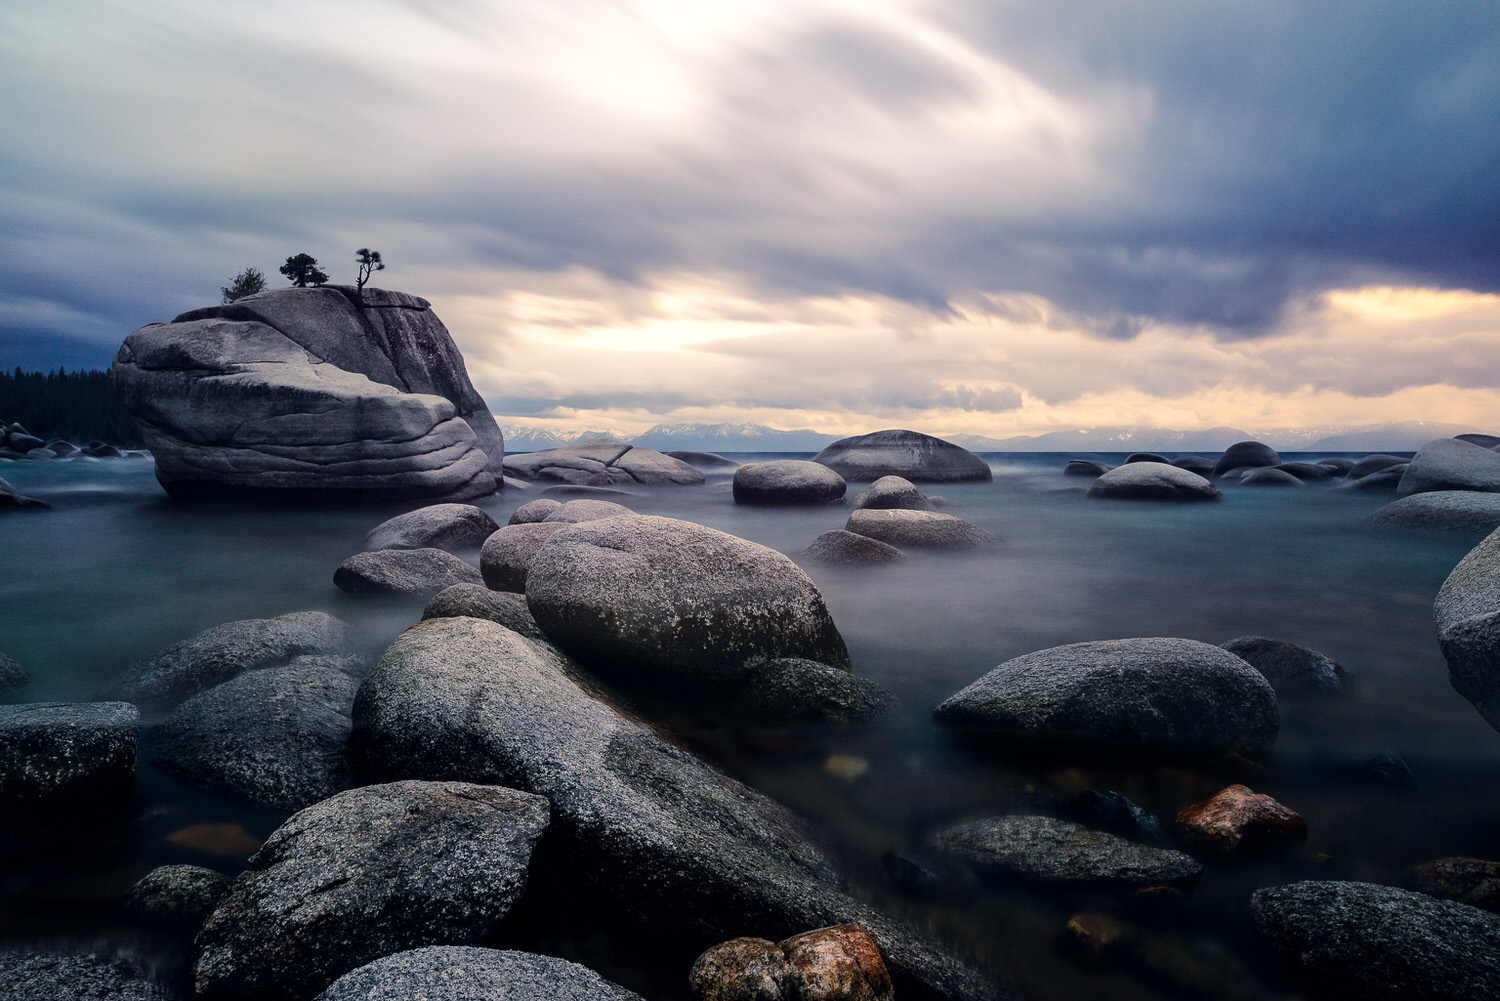 Storm and Serenity - Bonsai Rock